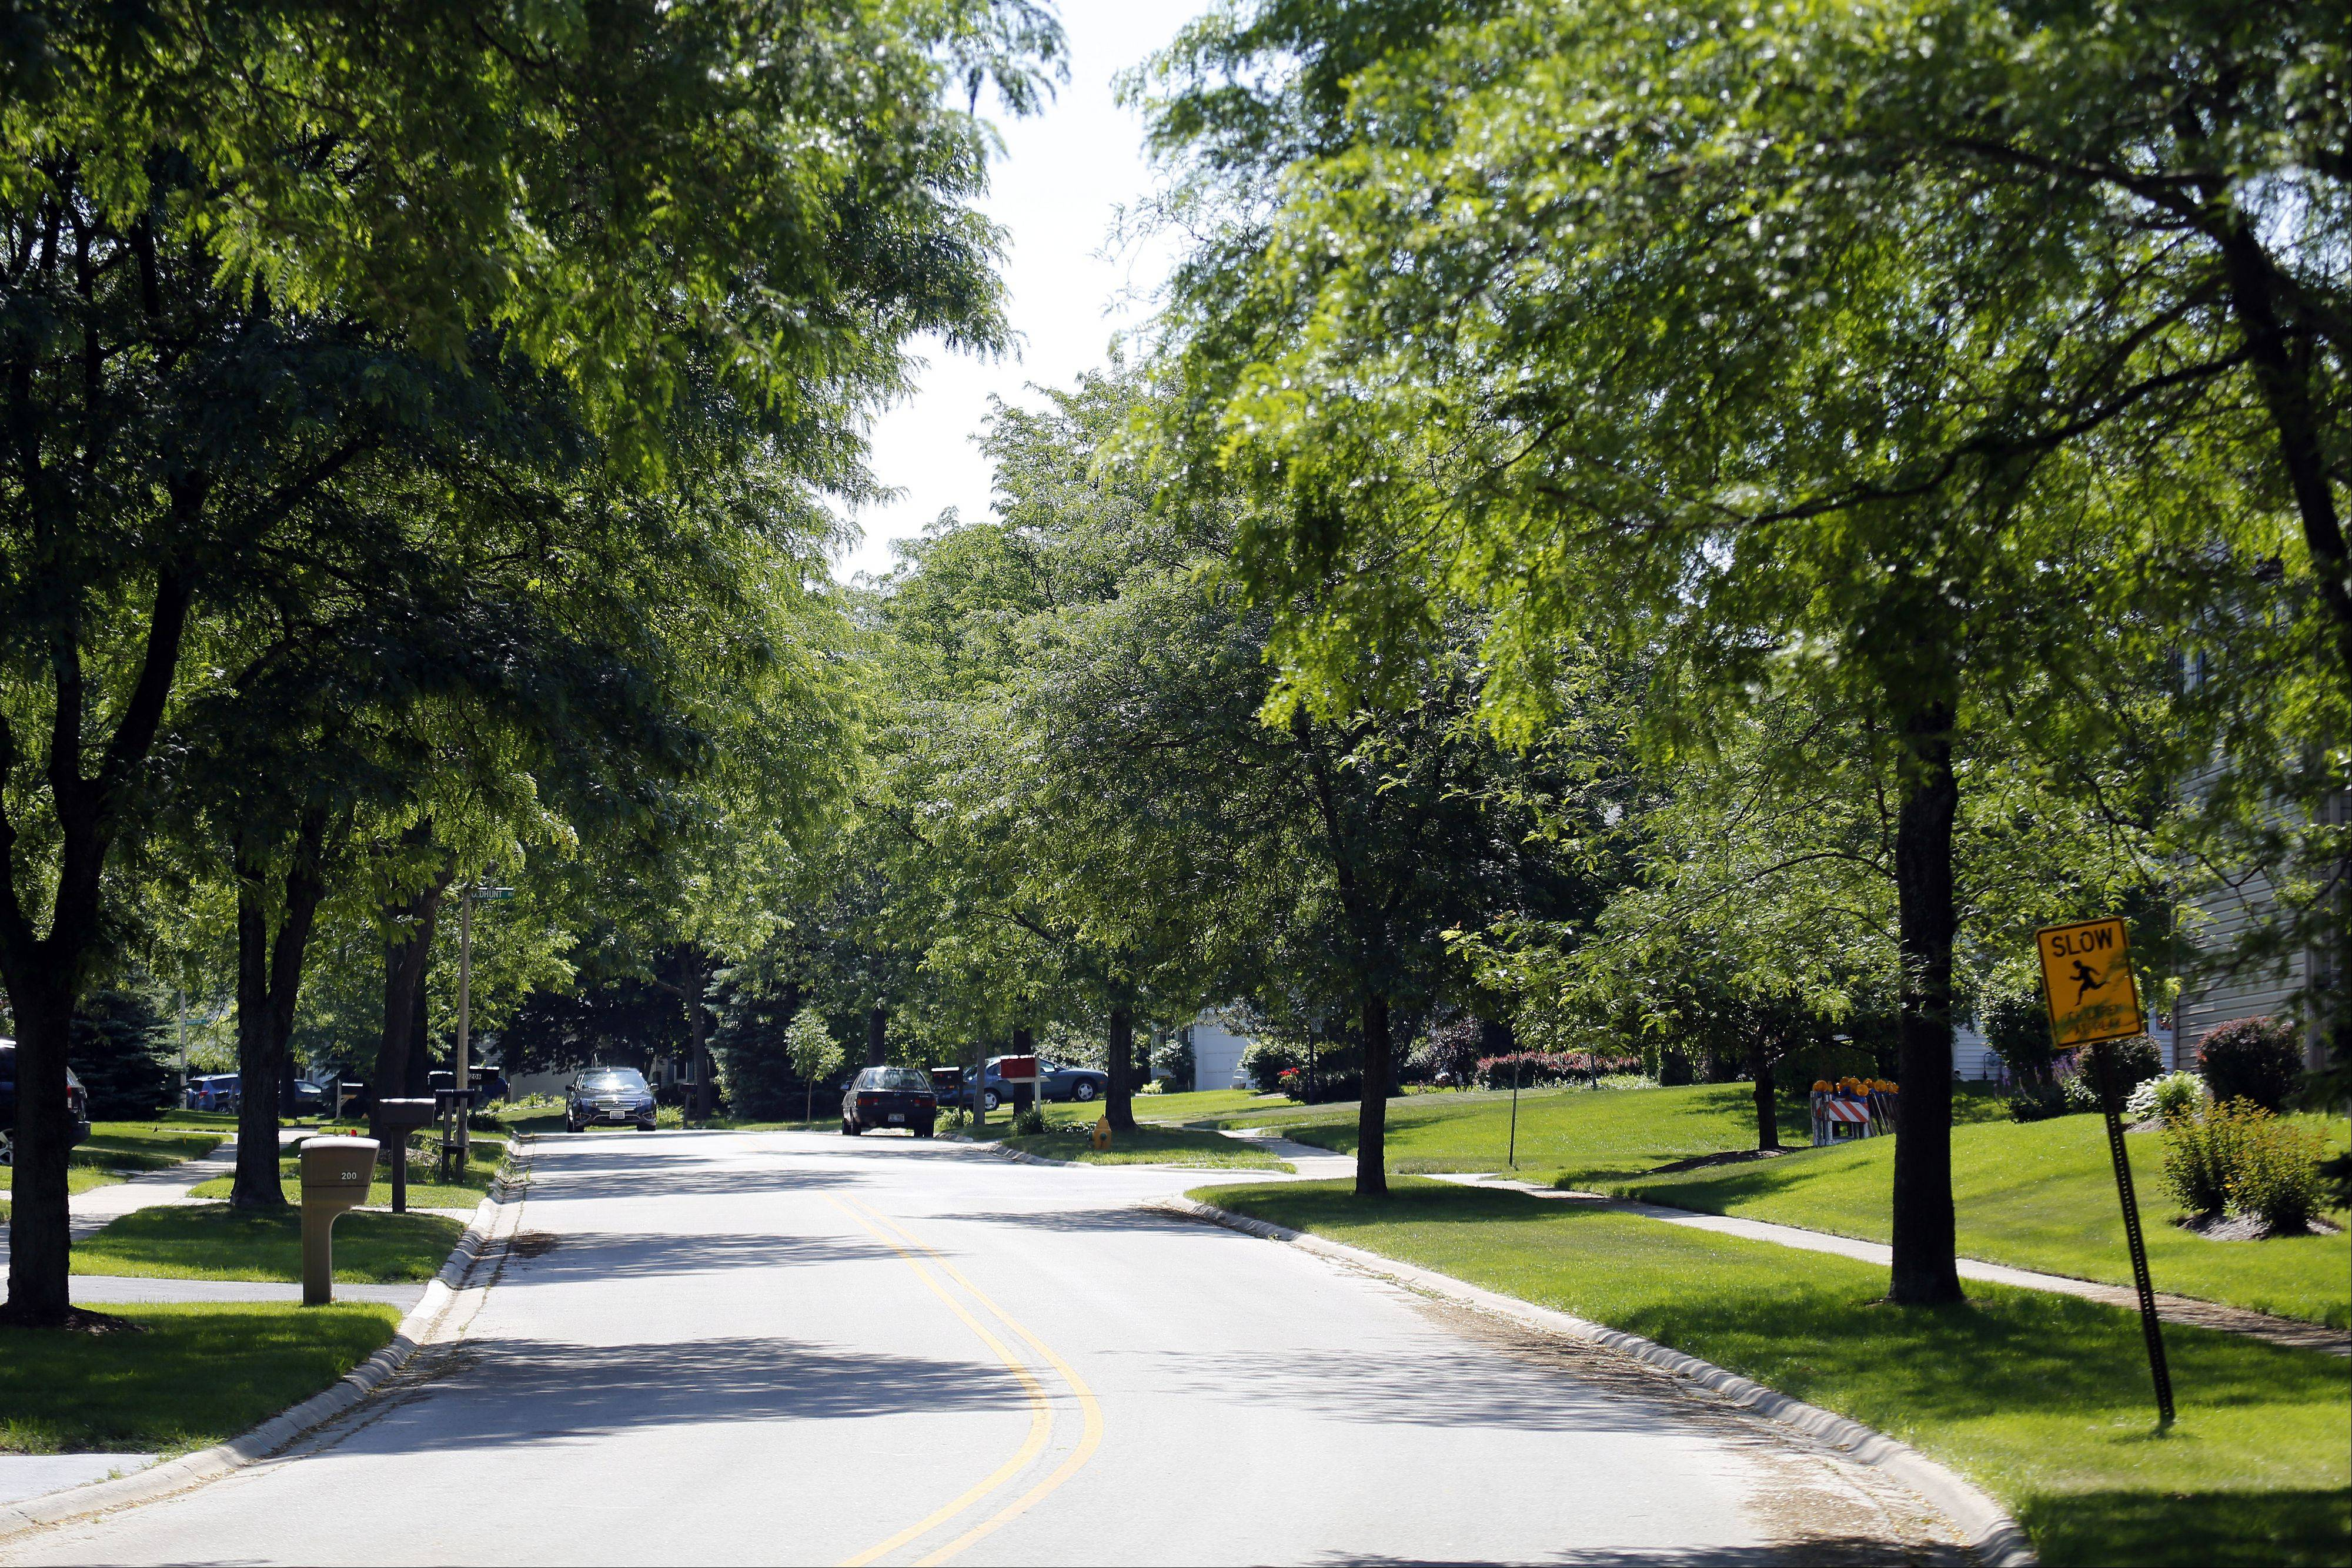 The mature trees along Foxmoor Road add to the quiet, secluded atmosphere of the Foxmoor neighborhood.